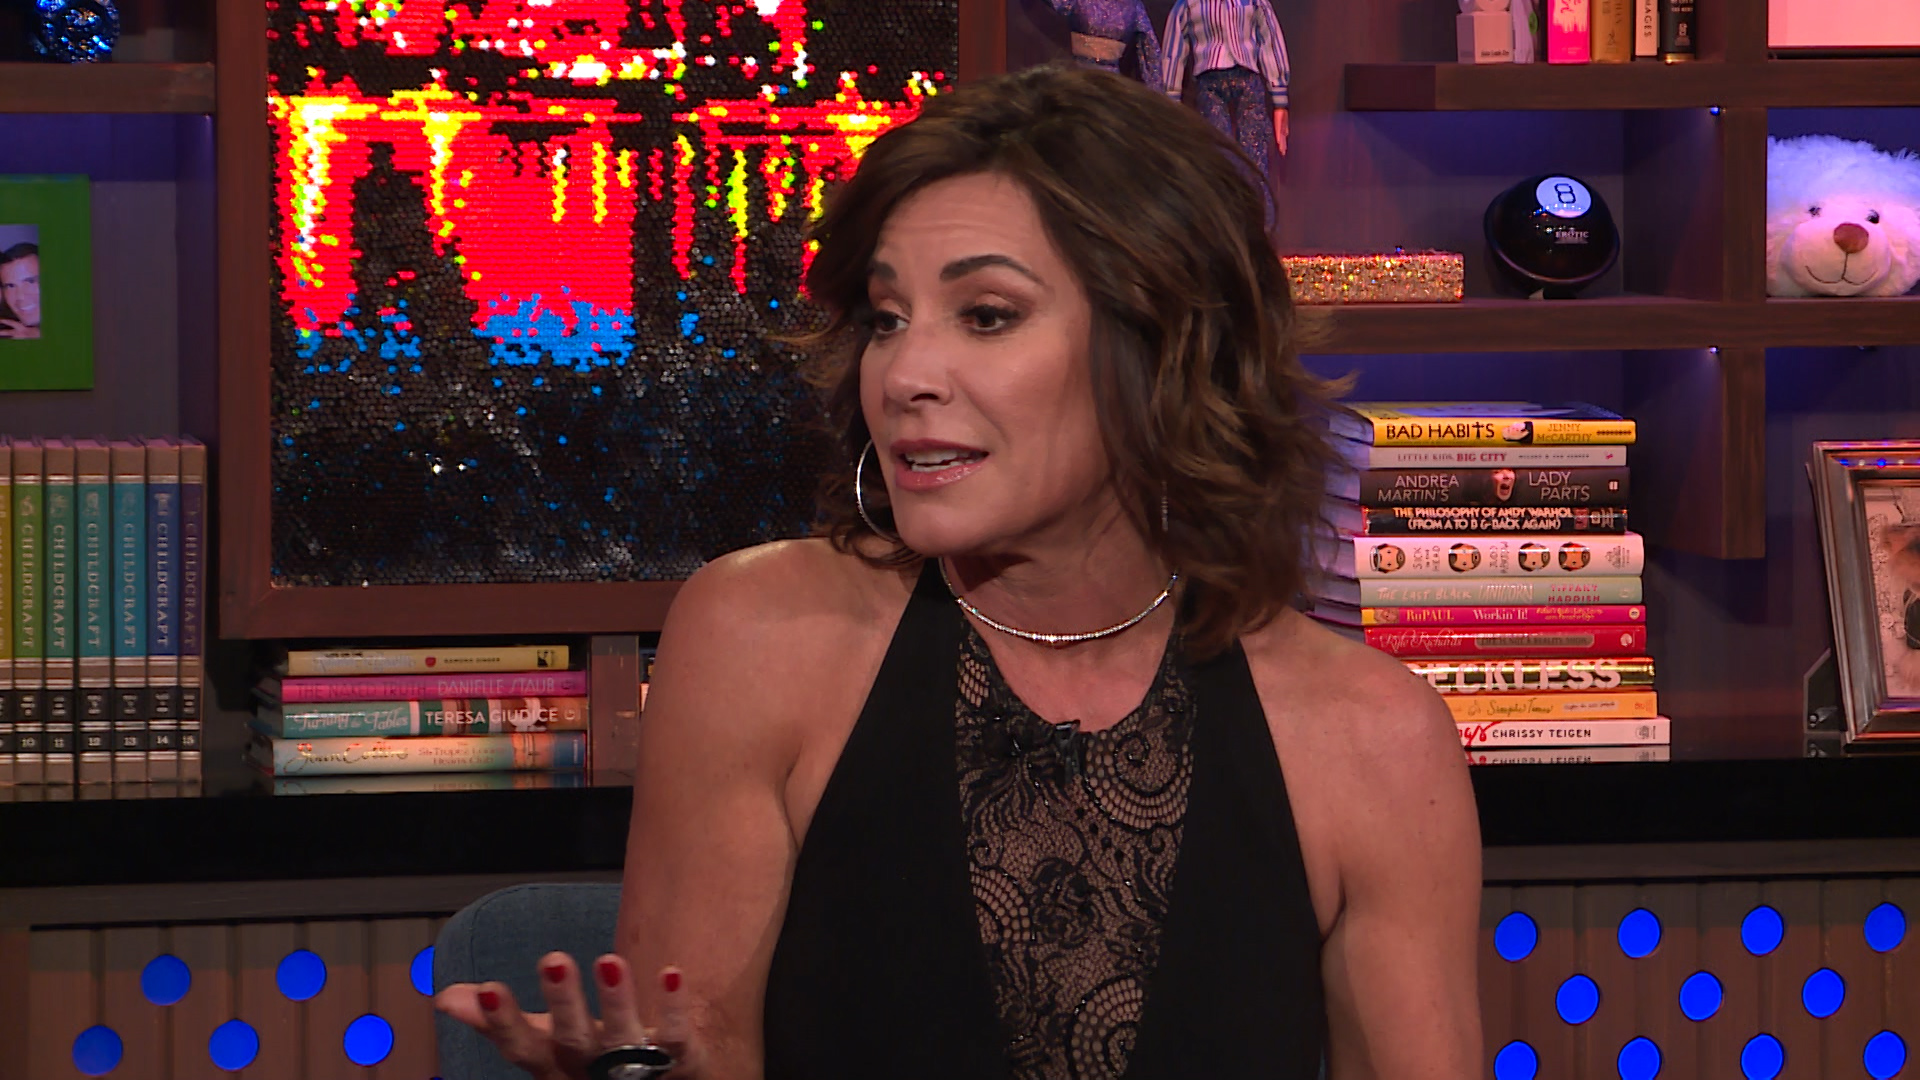 luann de lesseps from rhony addresses her controversial diana ross costume and denies attending the halloween party in blackface and also says she didnt